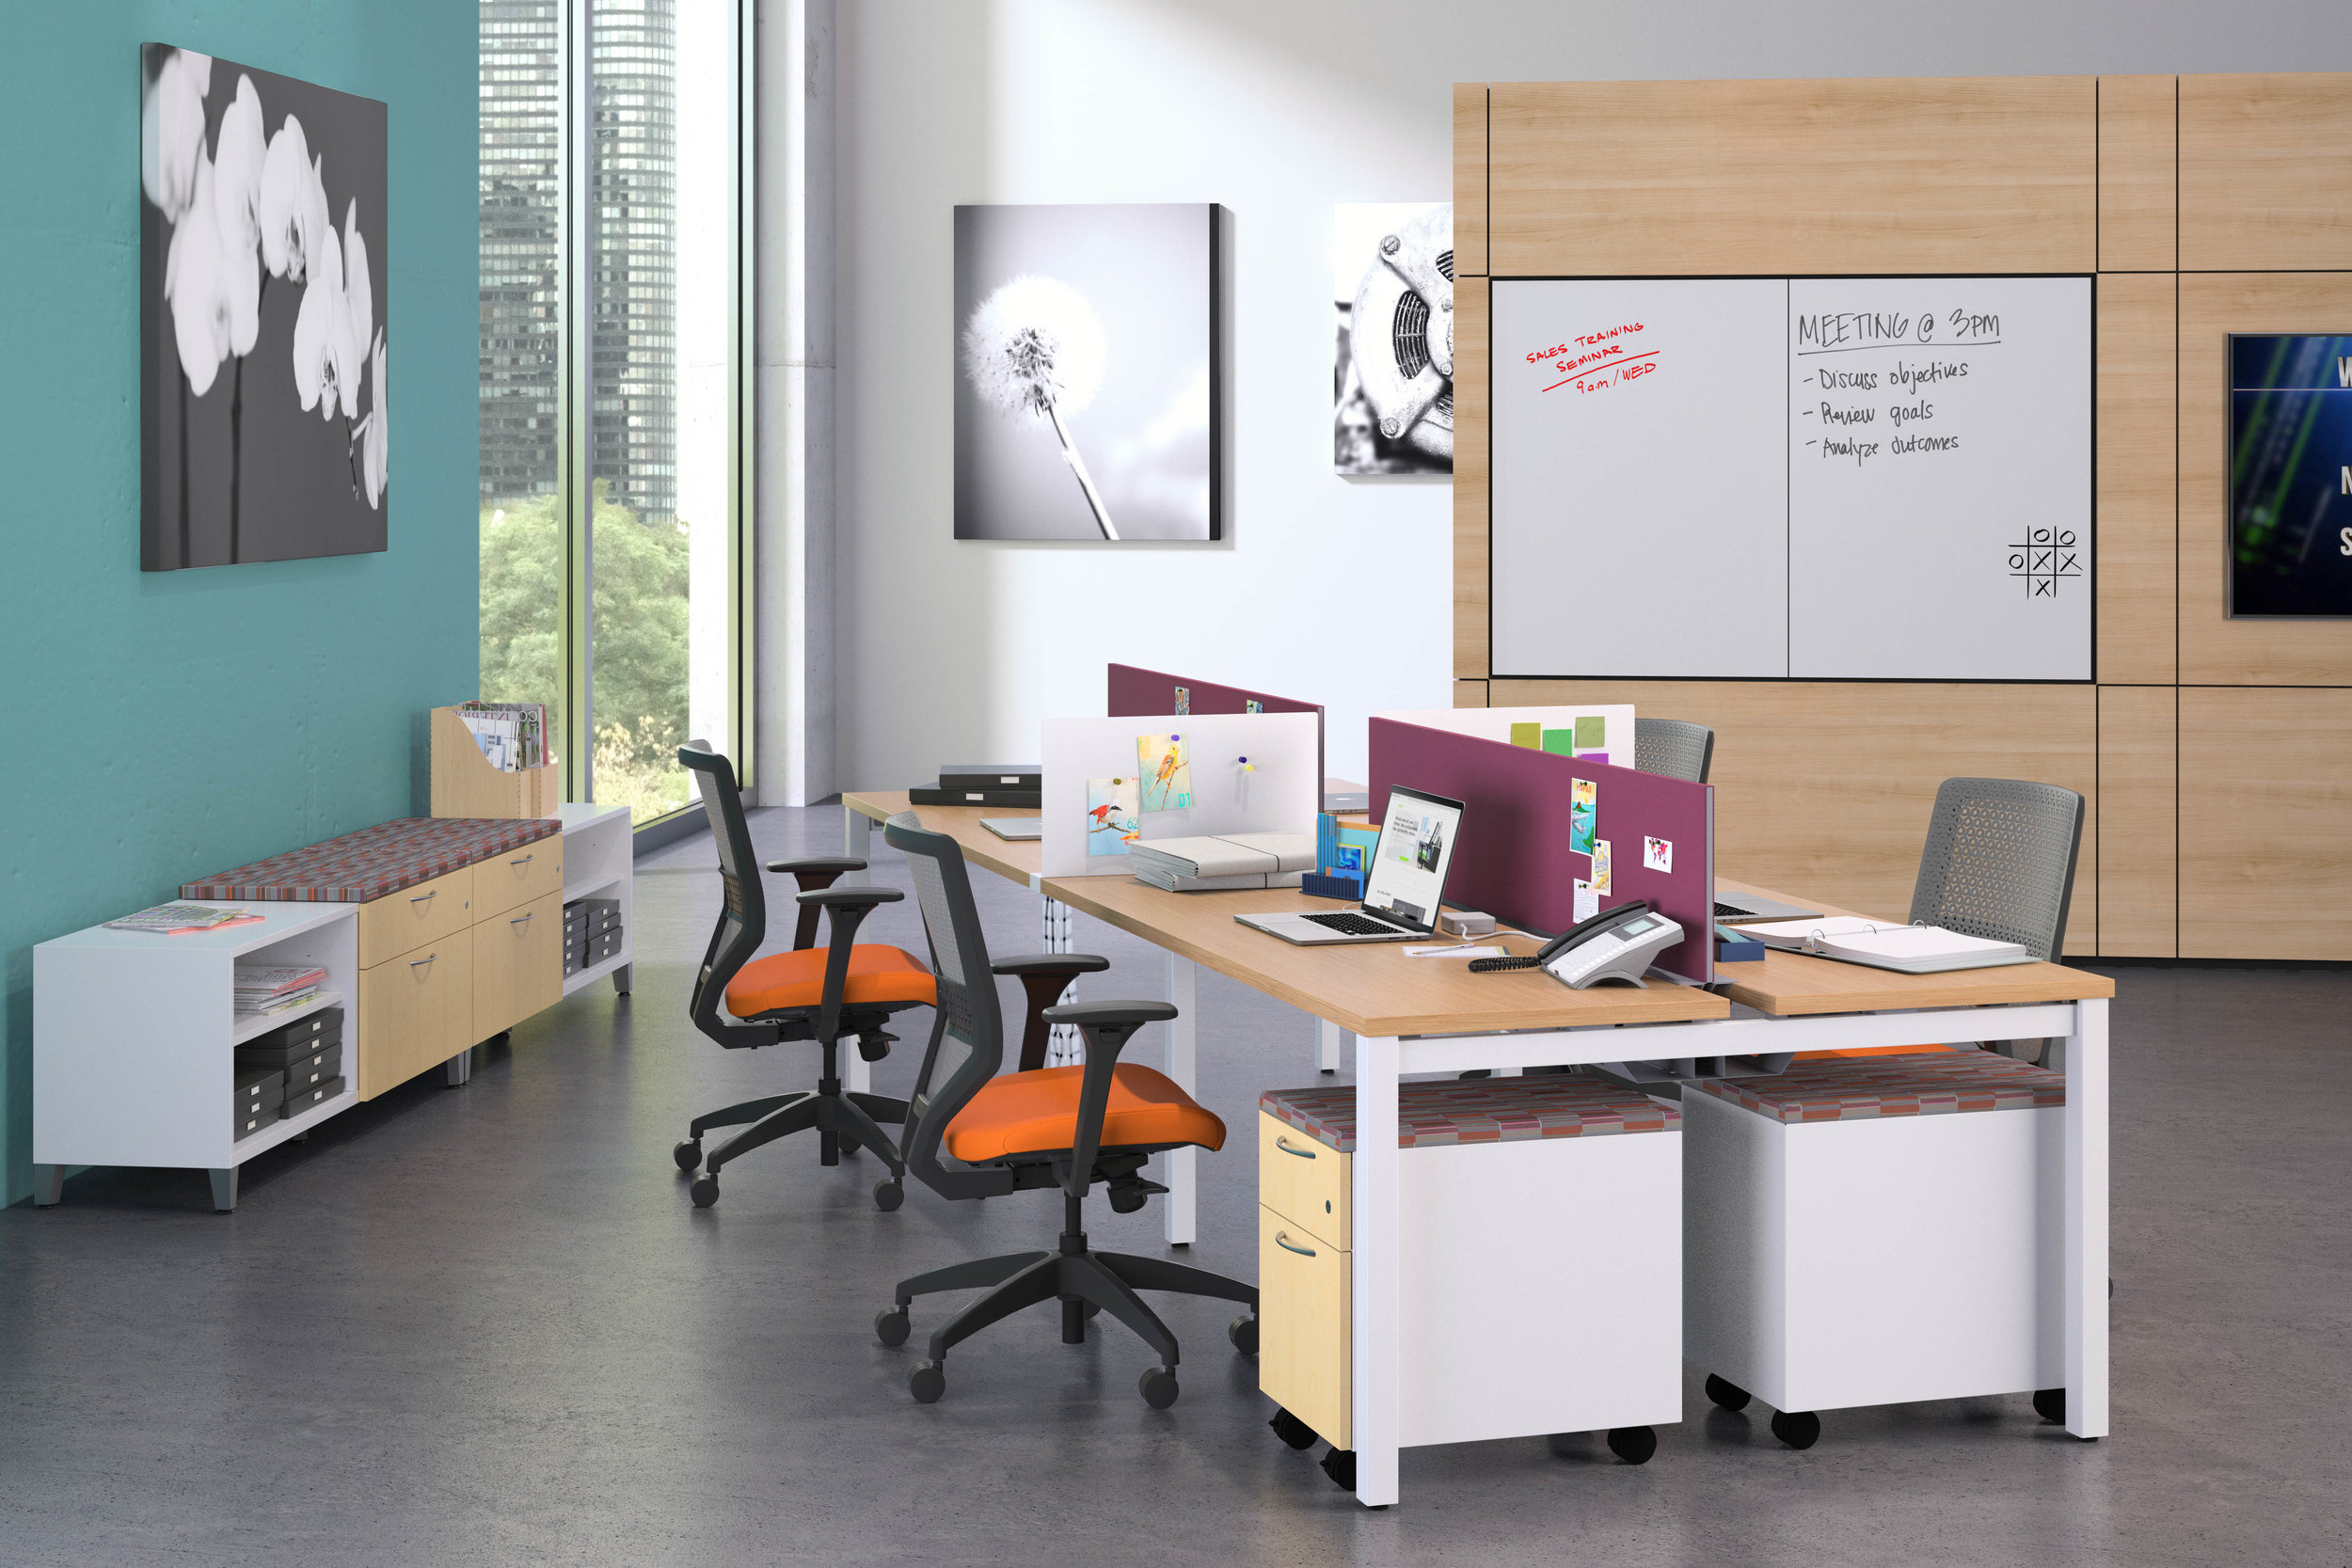 Workstations - Connecting the way people work.